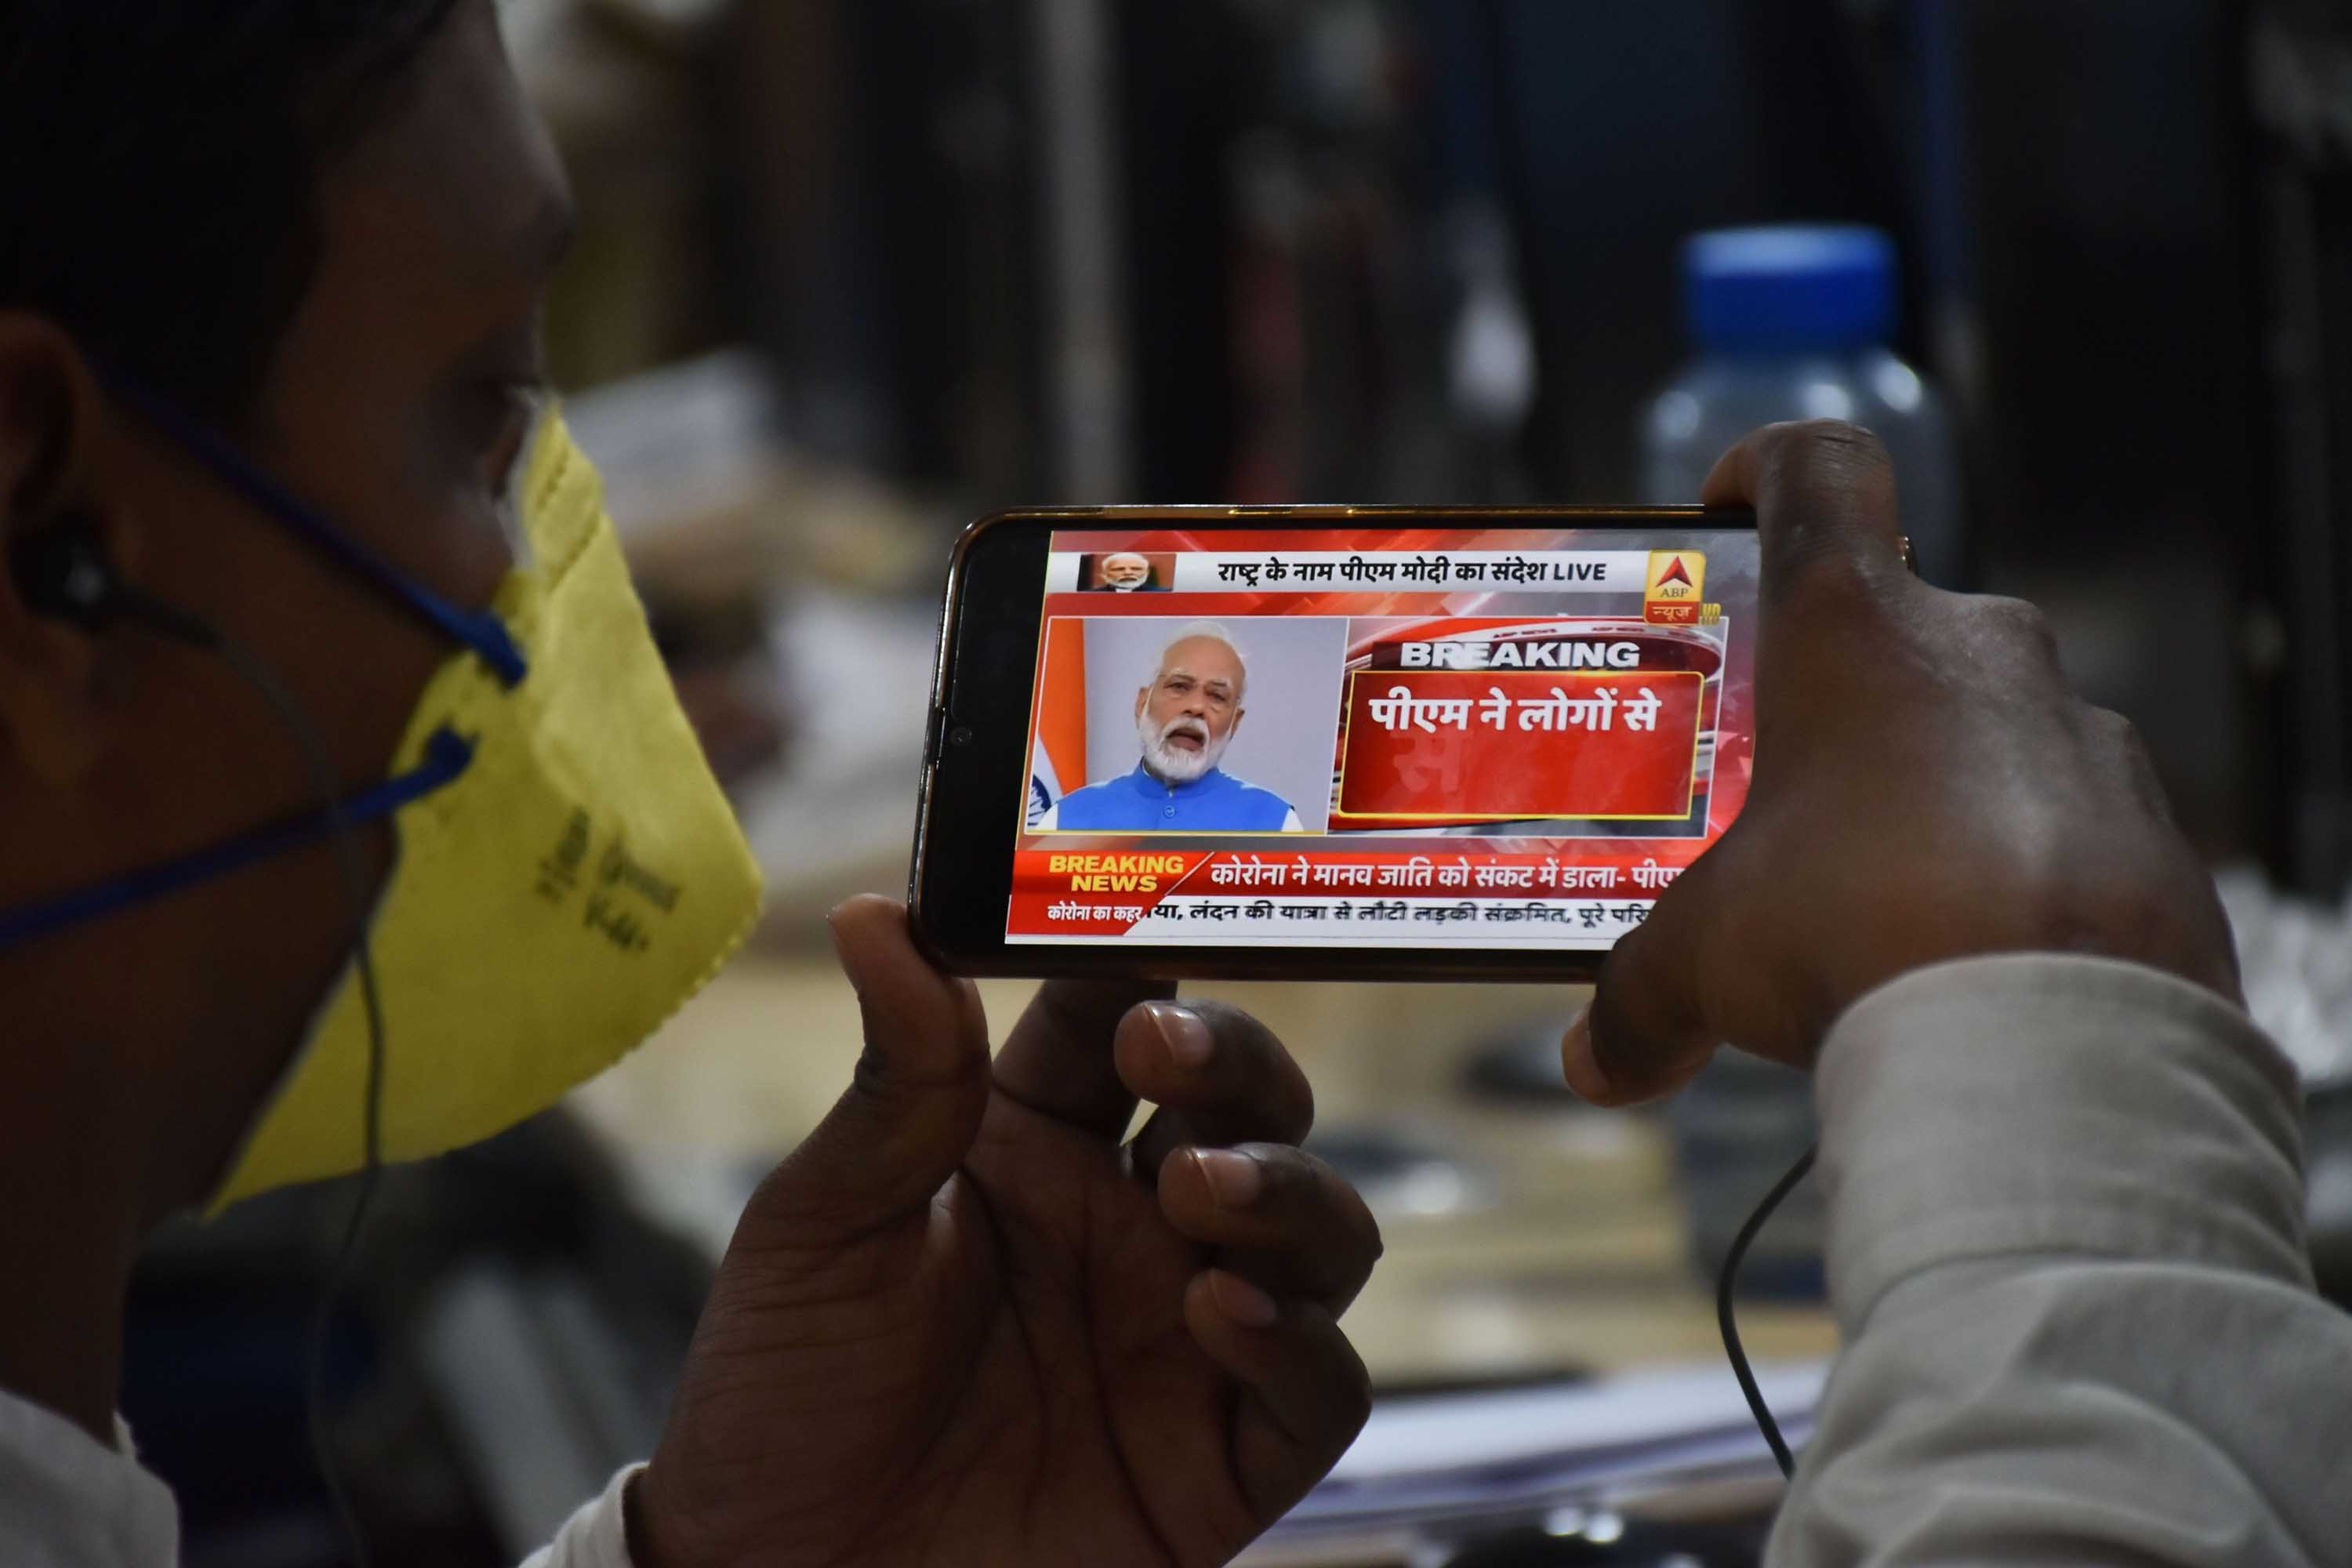 A man watches Indian Prime Minister Narendra Modi's address to the nation on a mobile phone in Jabalpur, on March 19.